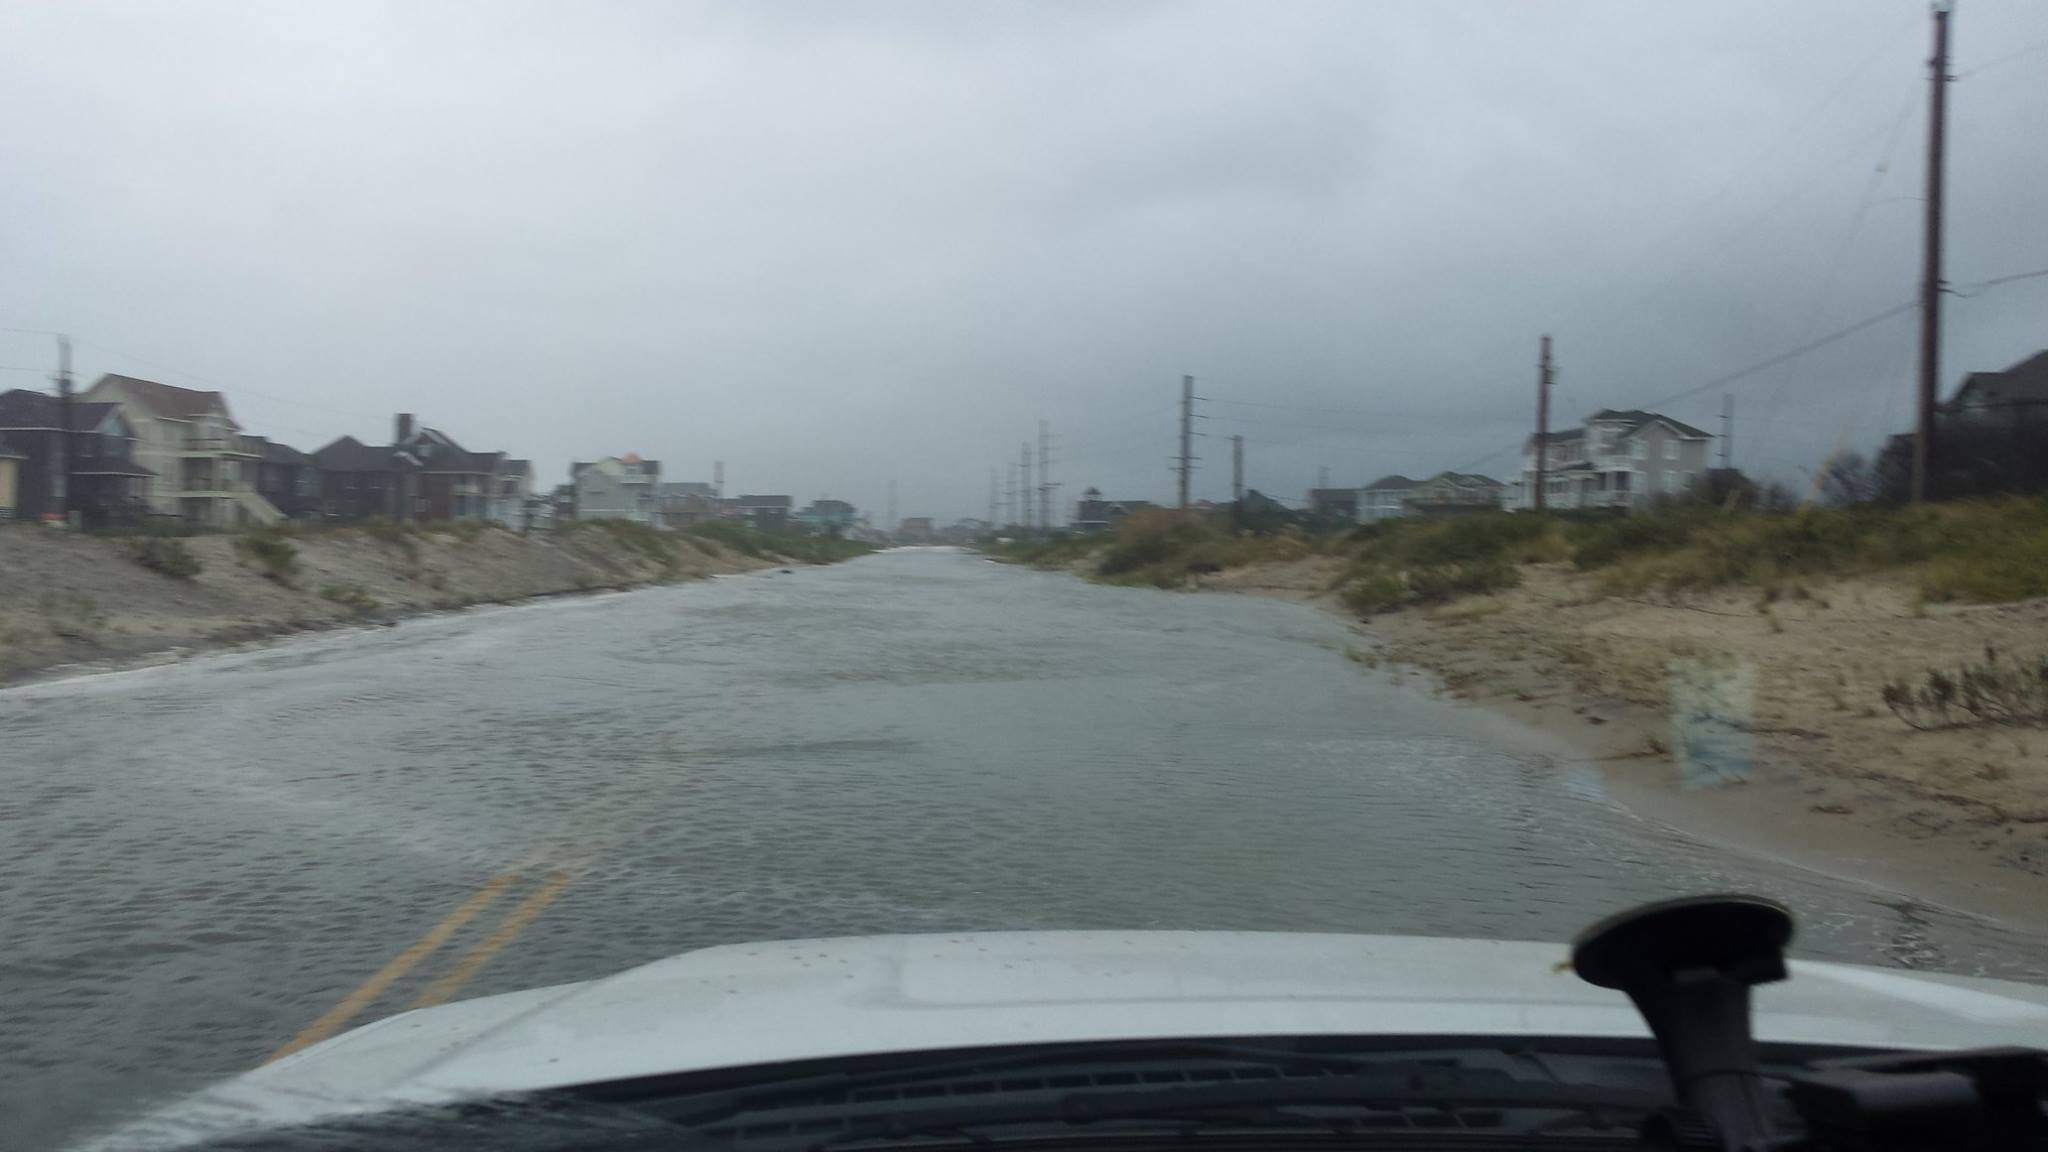 Hurricane Jose causes ocean overwash along Outer Banks